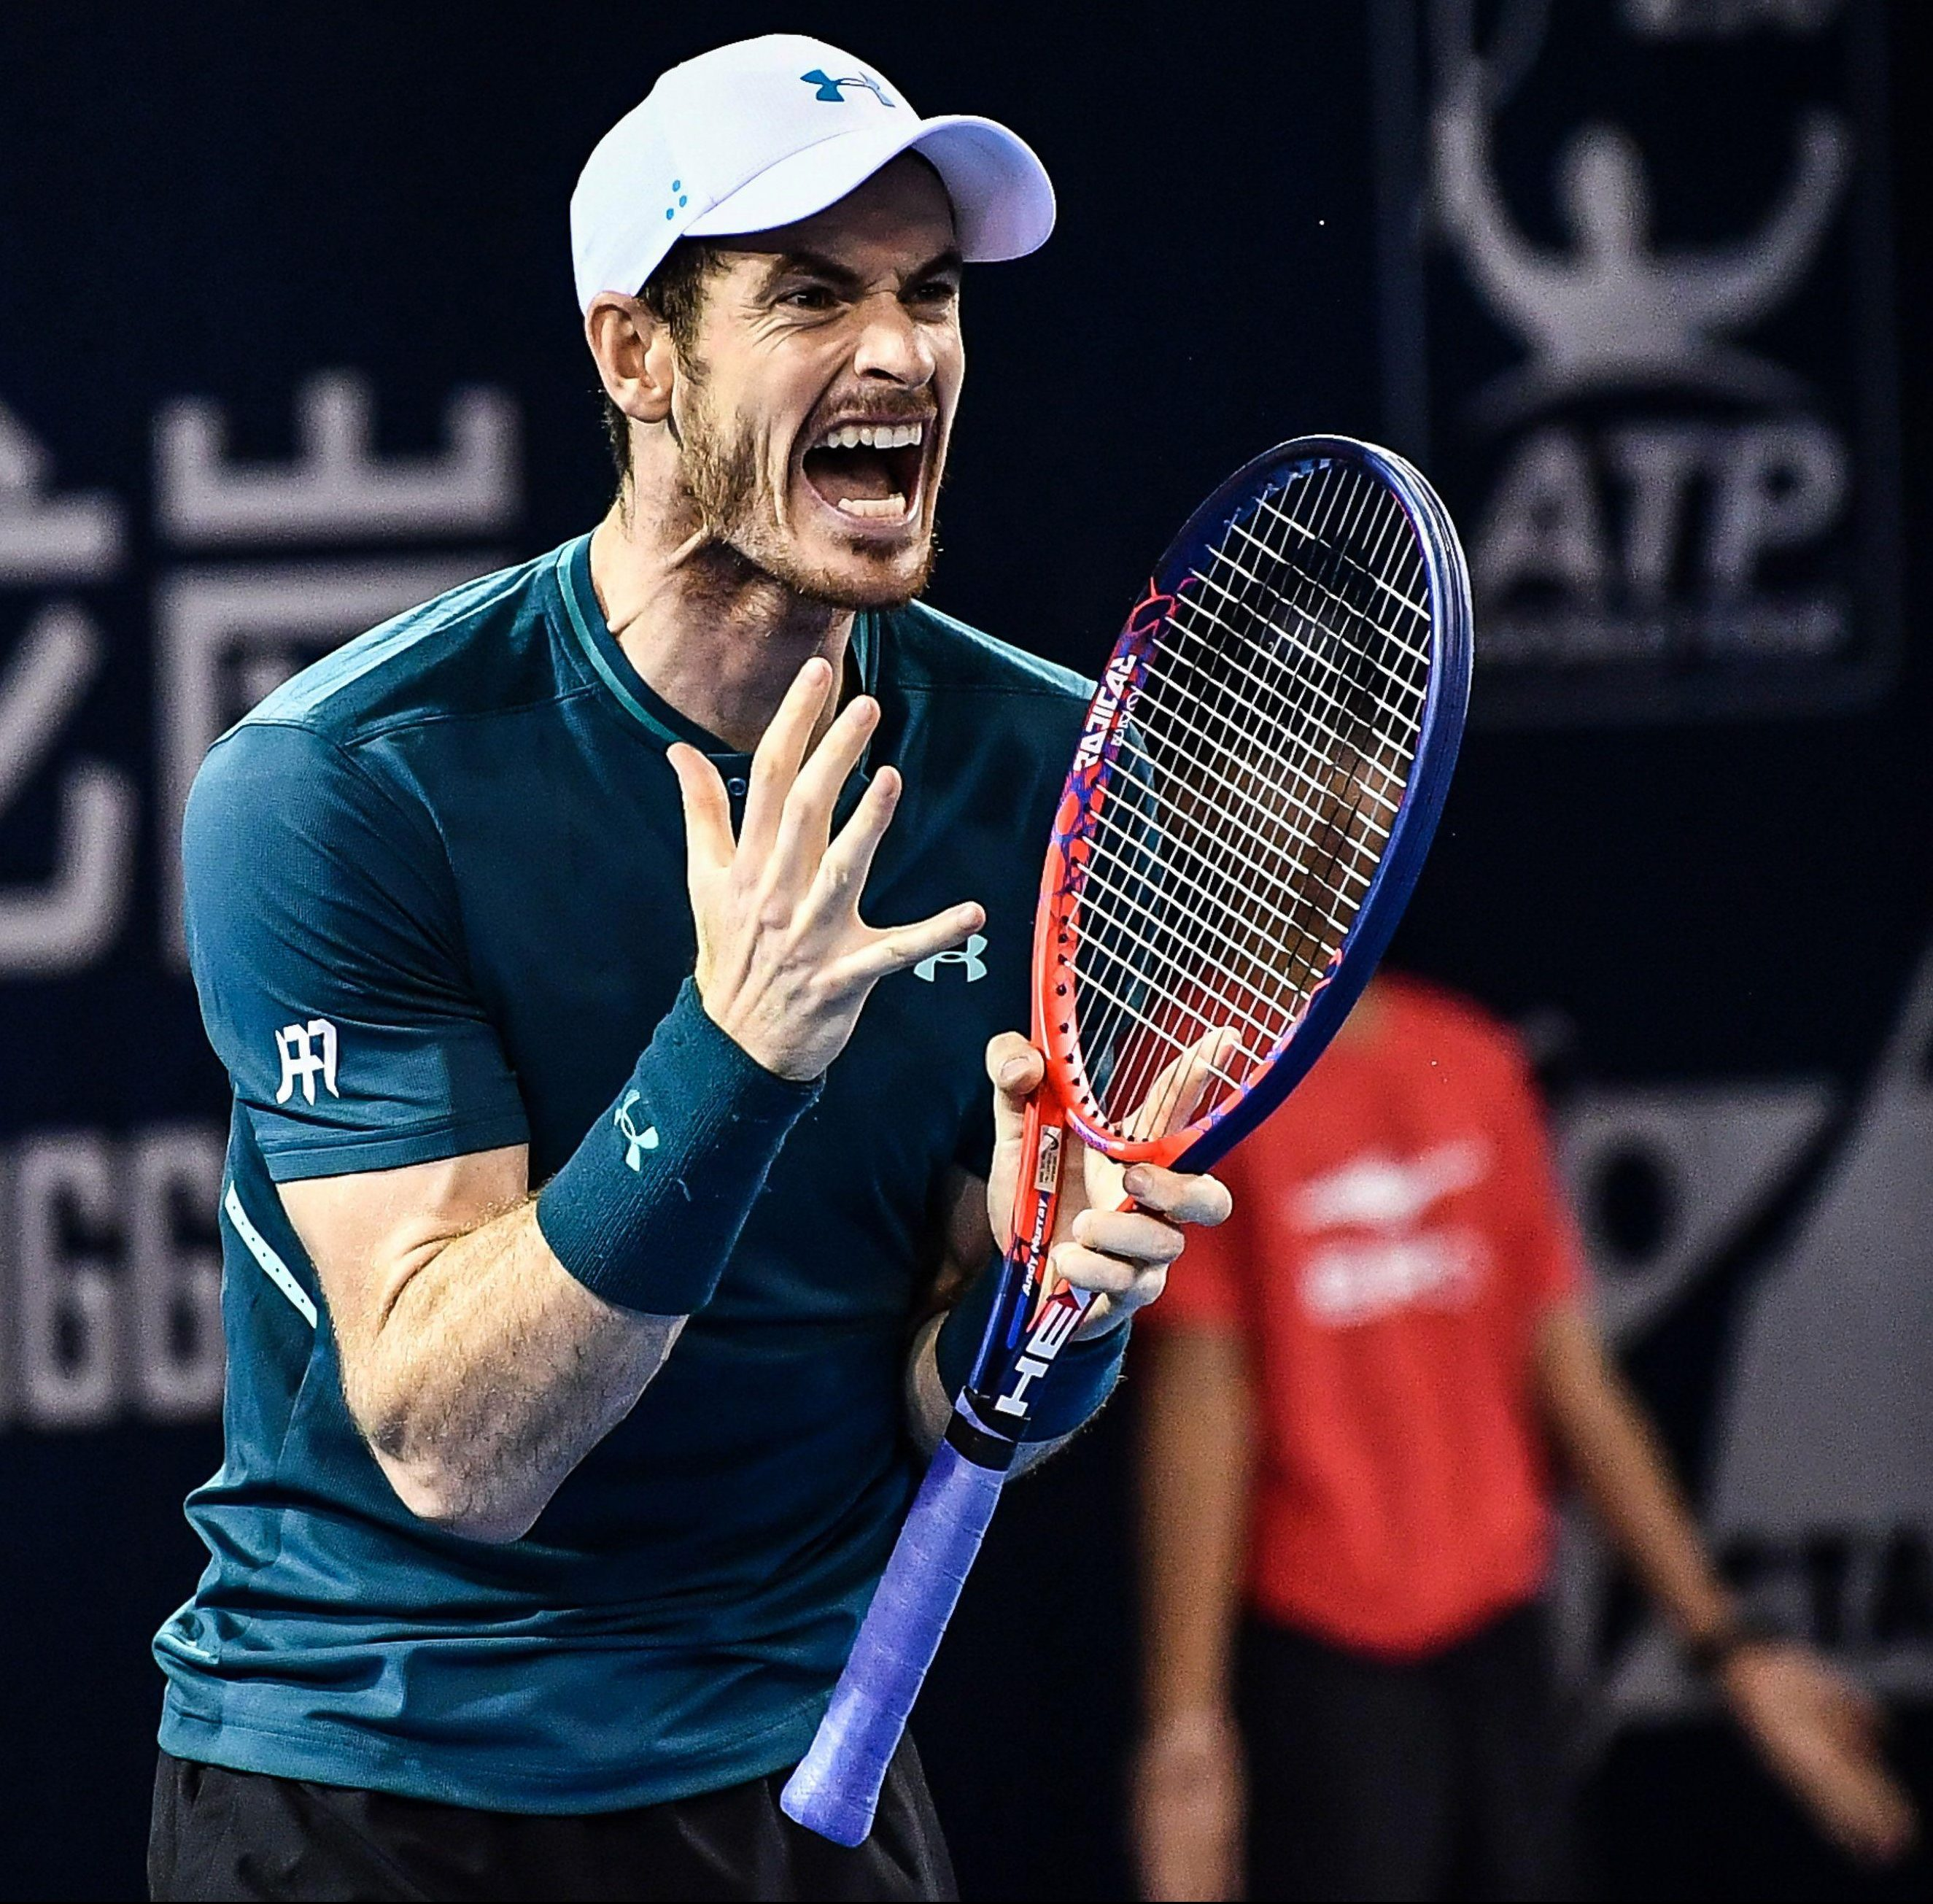 Andy Murray has had frustrating setbacks after his serious injury but Tim Henman is refusing to write off the former world No 1